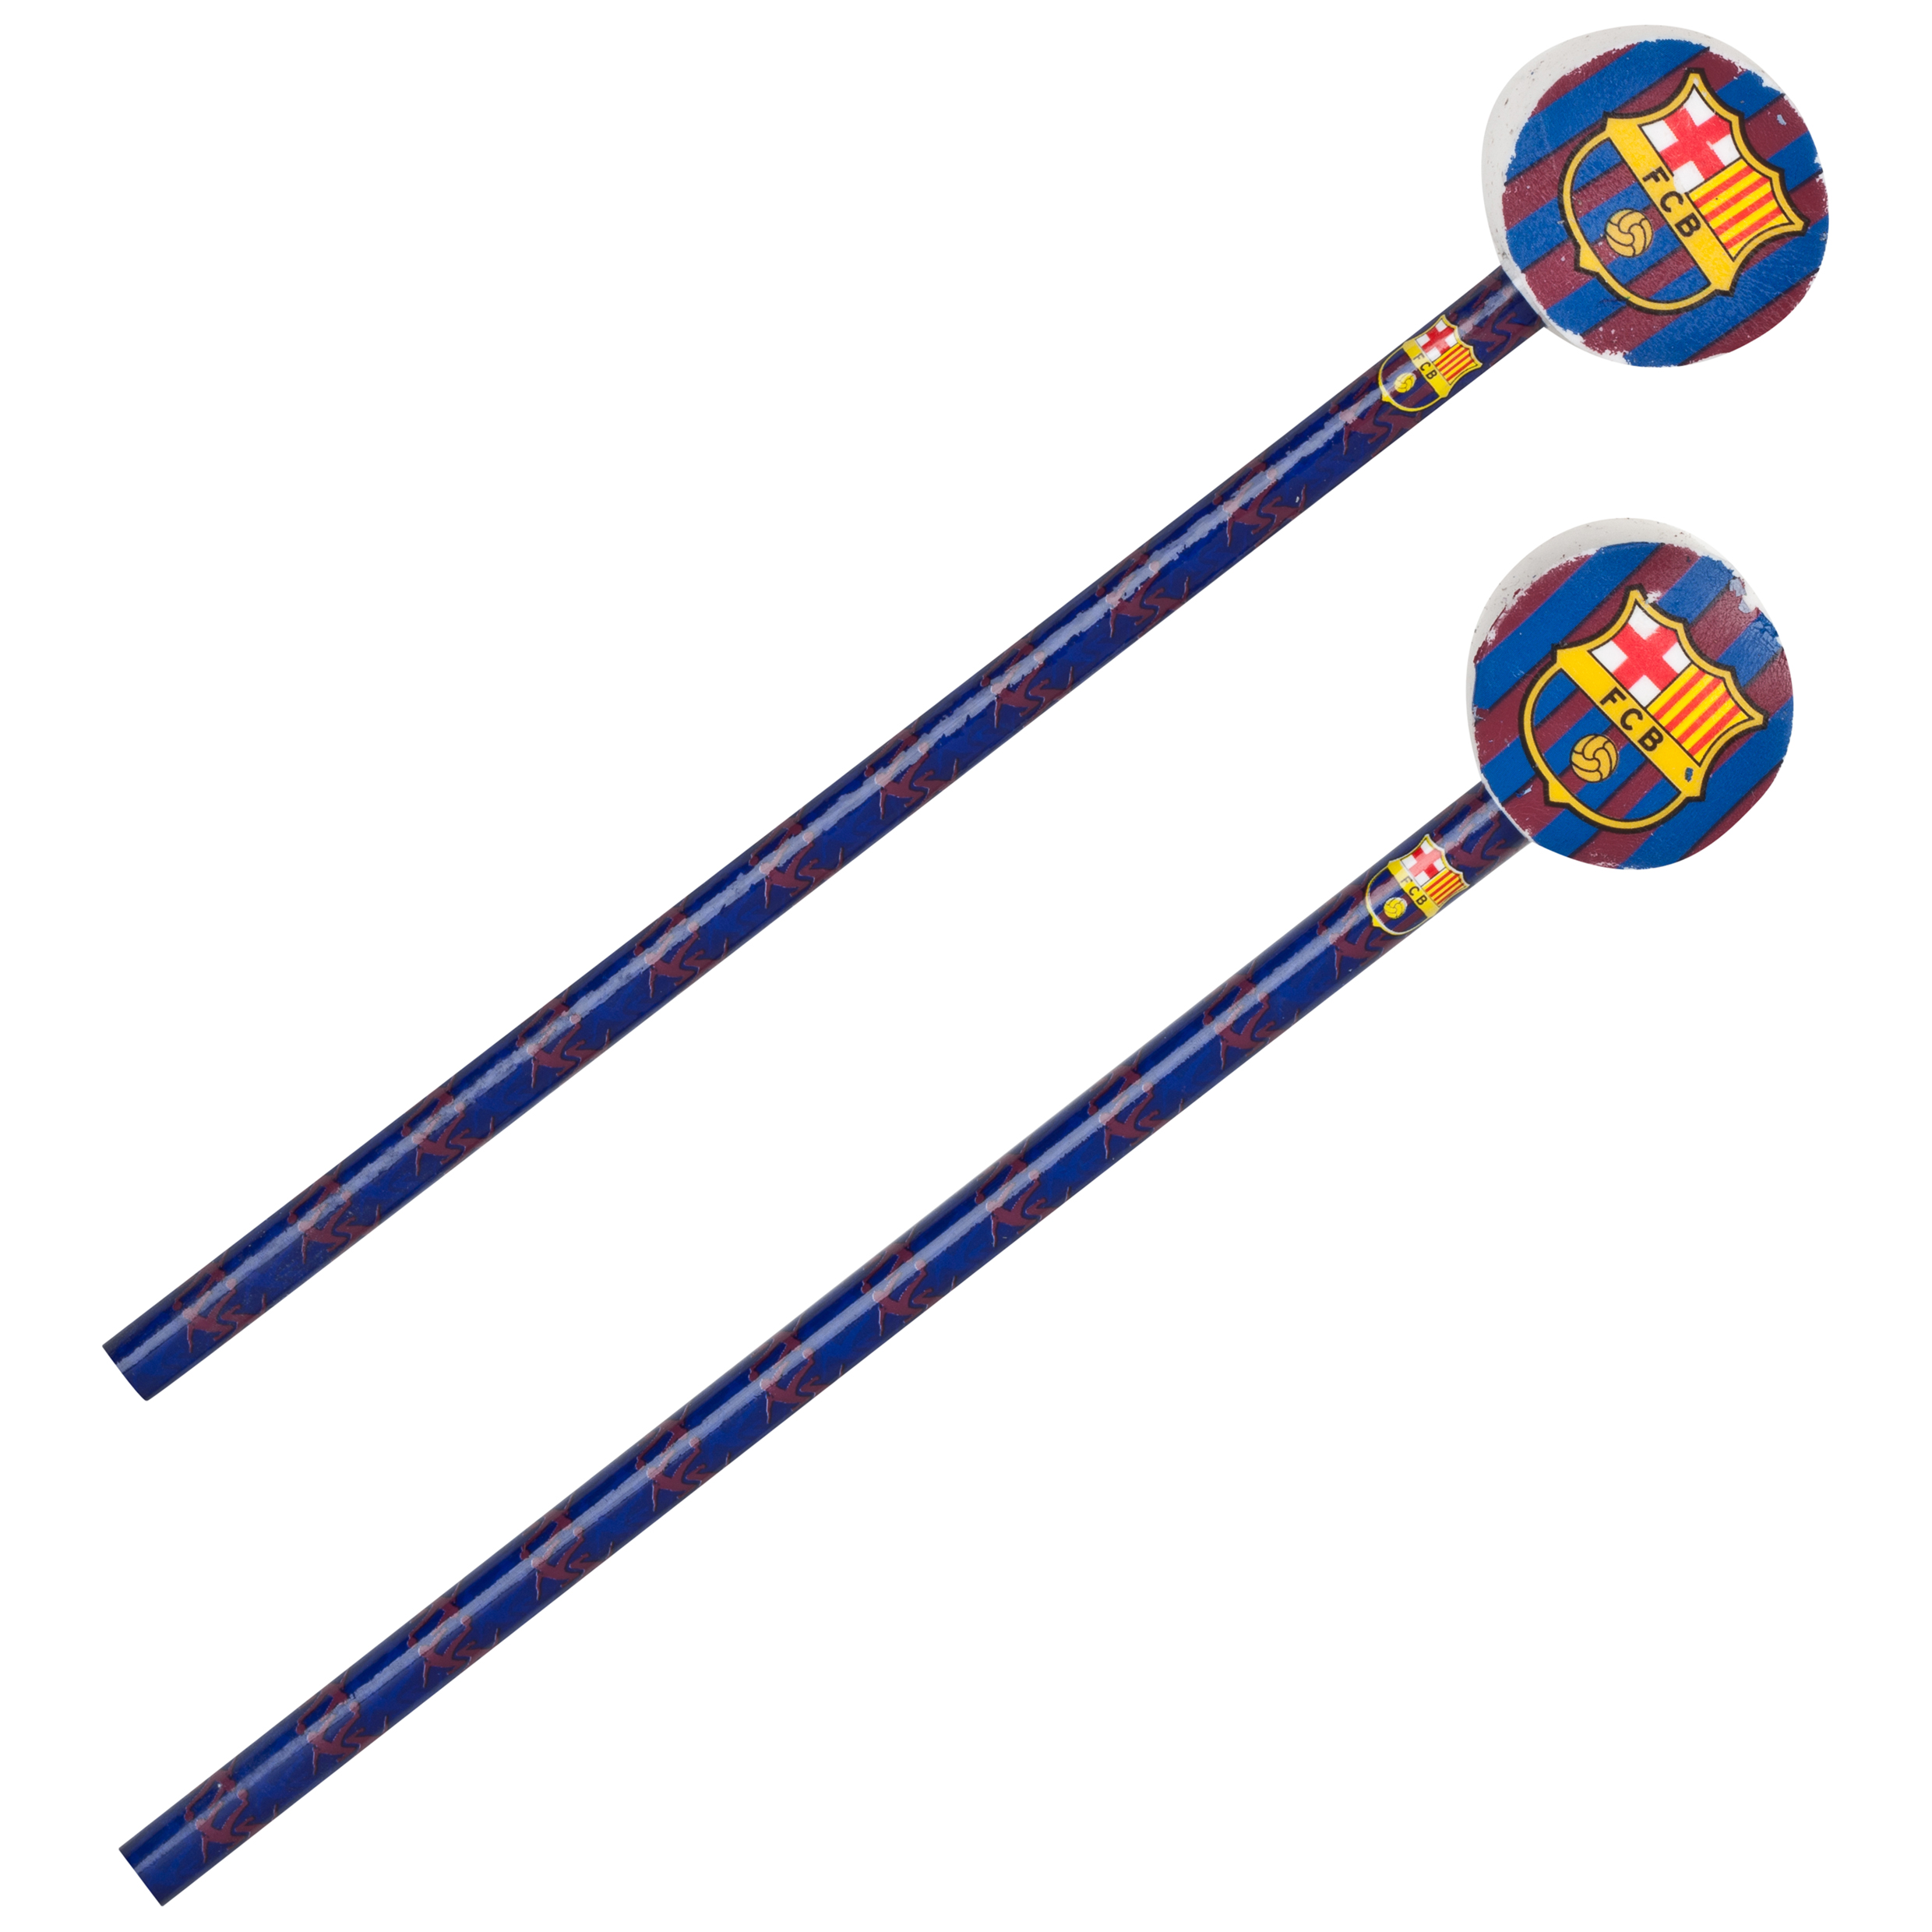 Barcelona Big Logo Pencil with Topper - 2 Pack